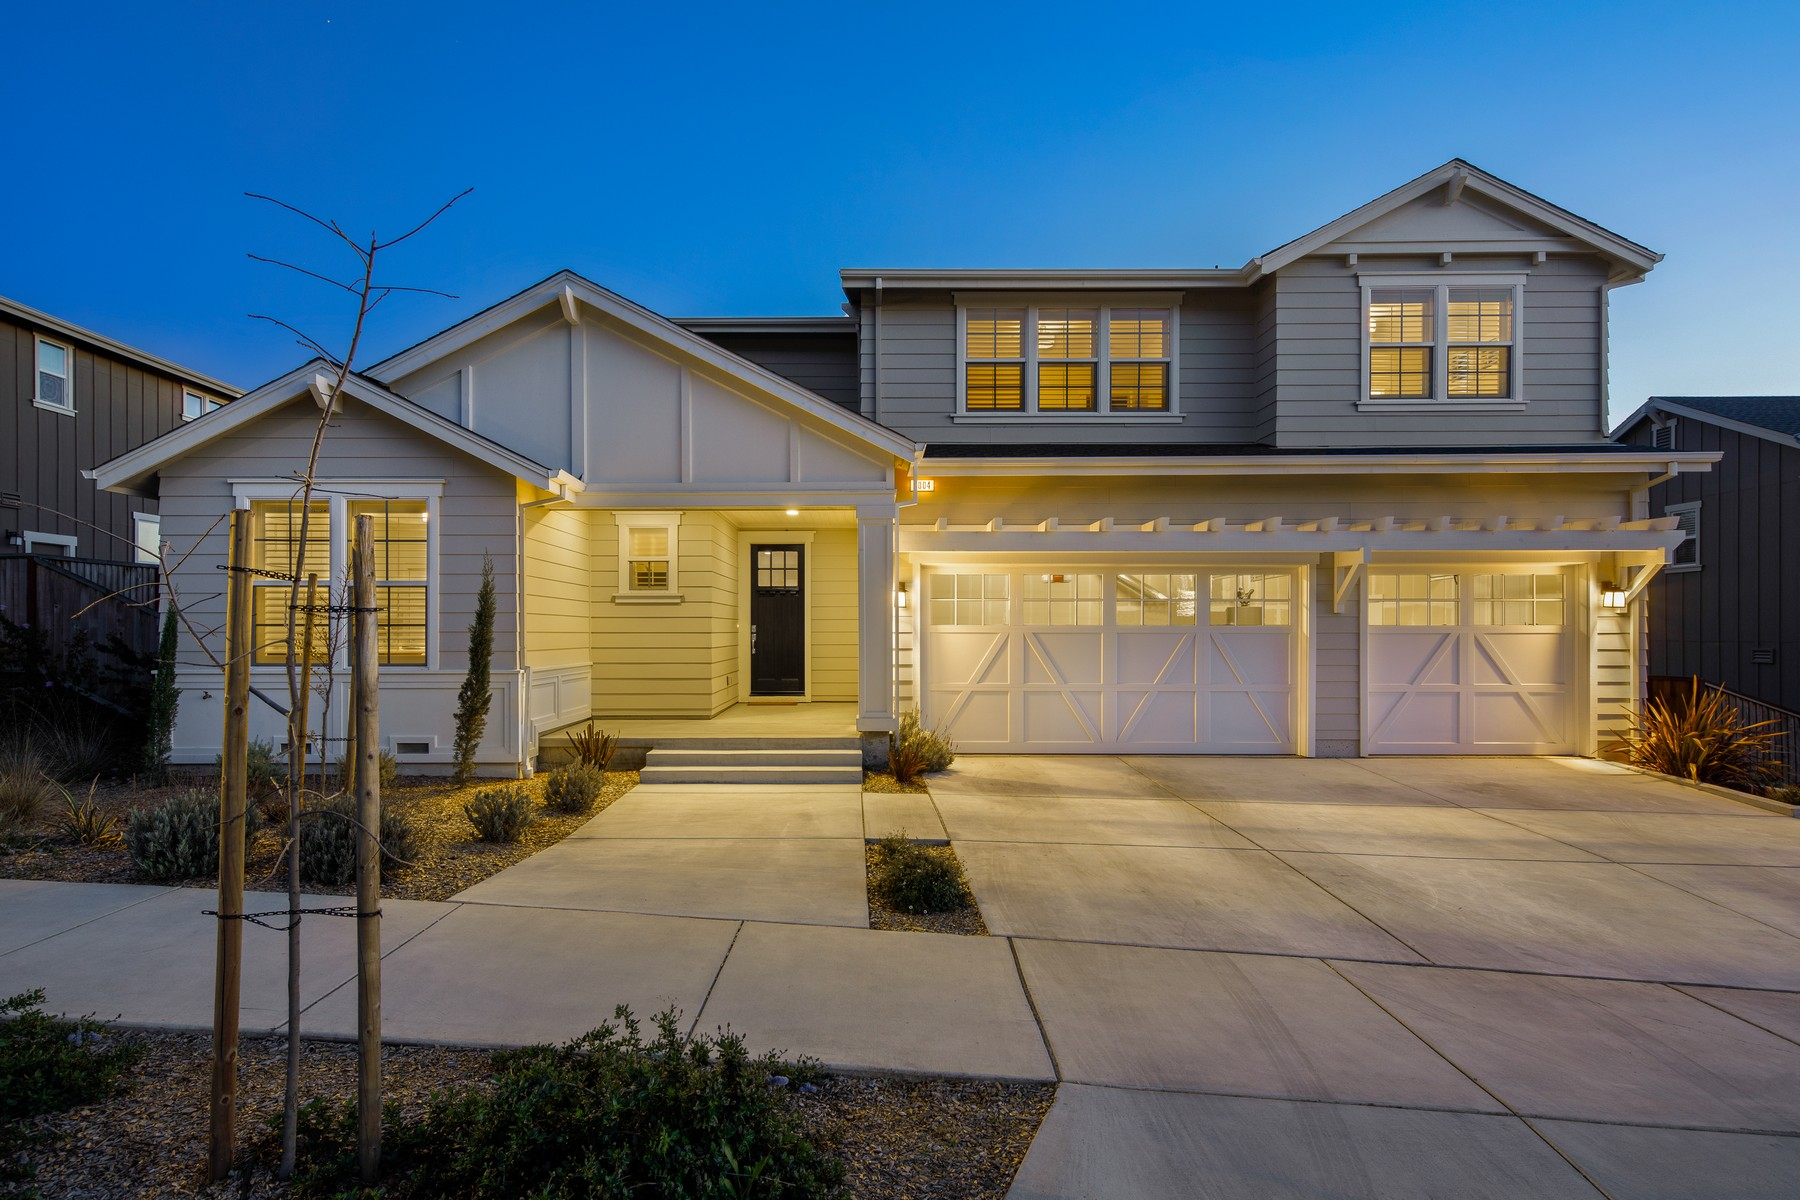 Single Family Homes for Active at Stunning View Home in Skyhawk Reserves 6004 Sunhawk Drive Santa Rosa, California 95409 United States